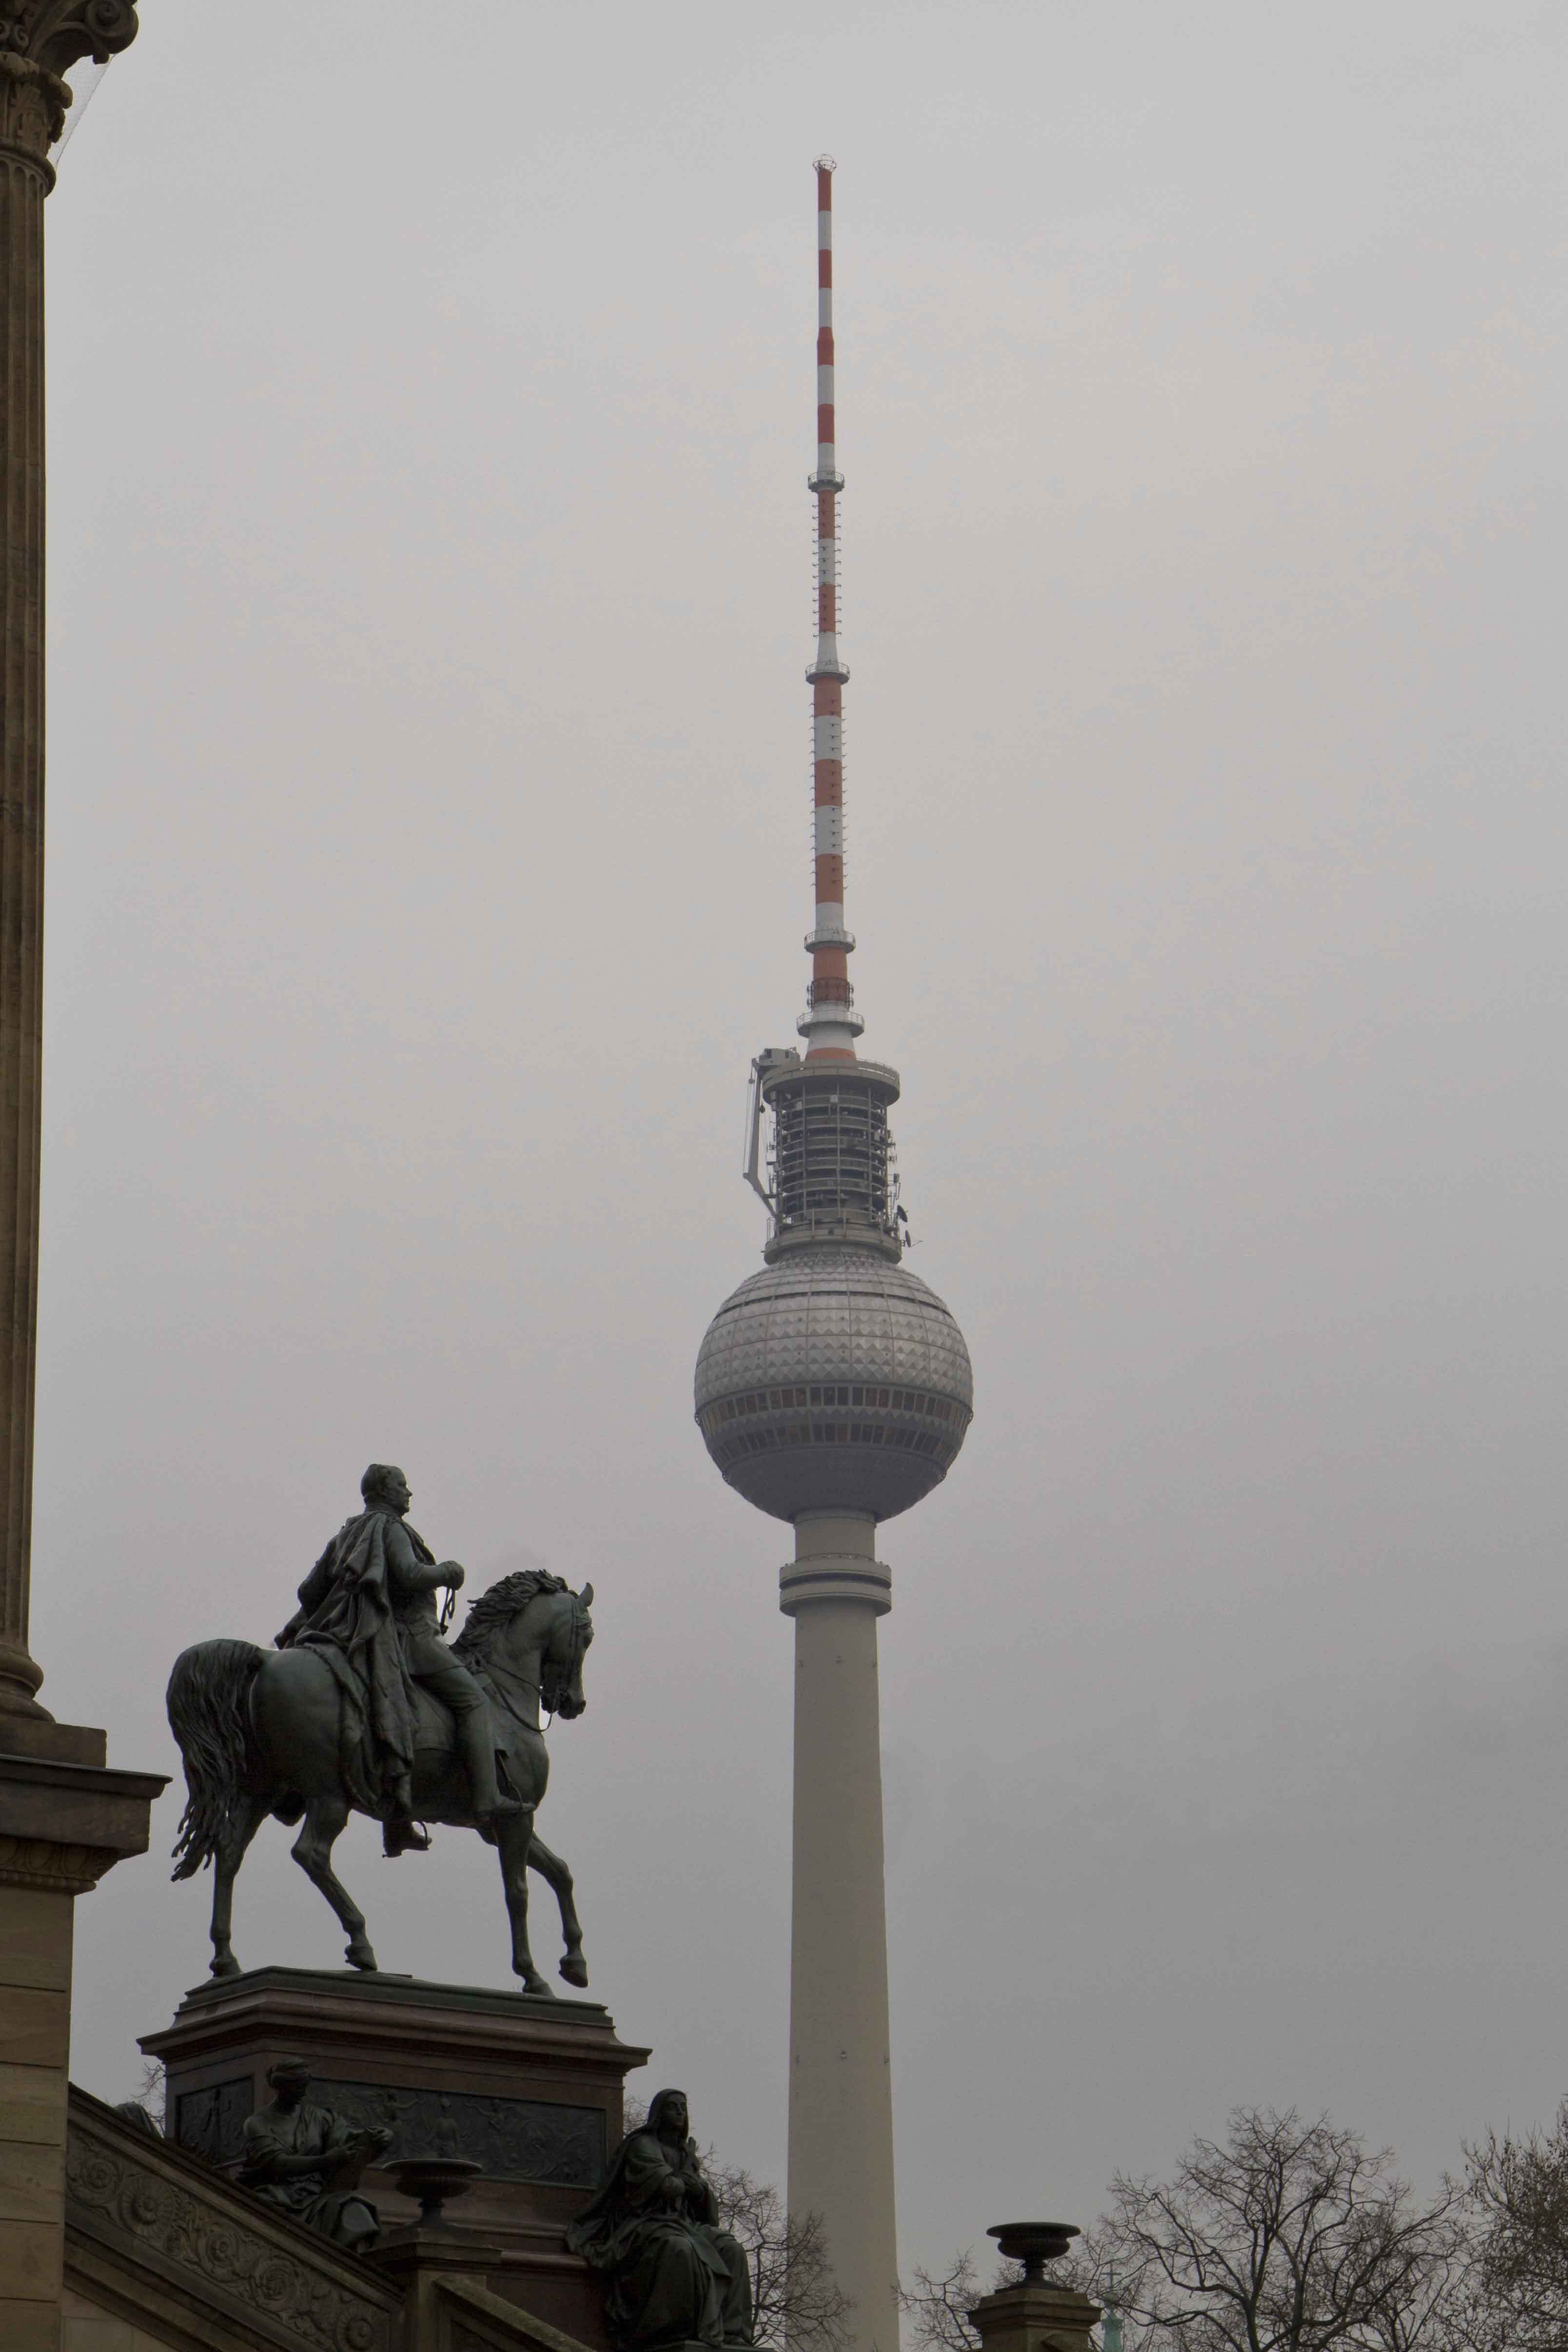 Ahh yes, the TV tower and Friedrich Wilhelm IV on horseback. I wonder what his favourite show was...?